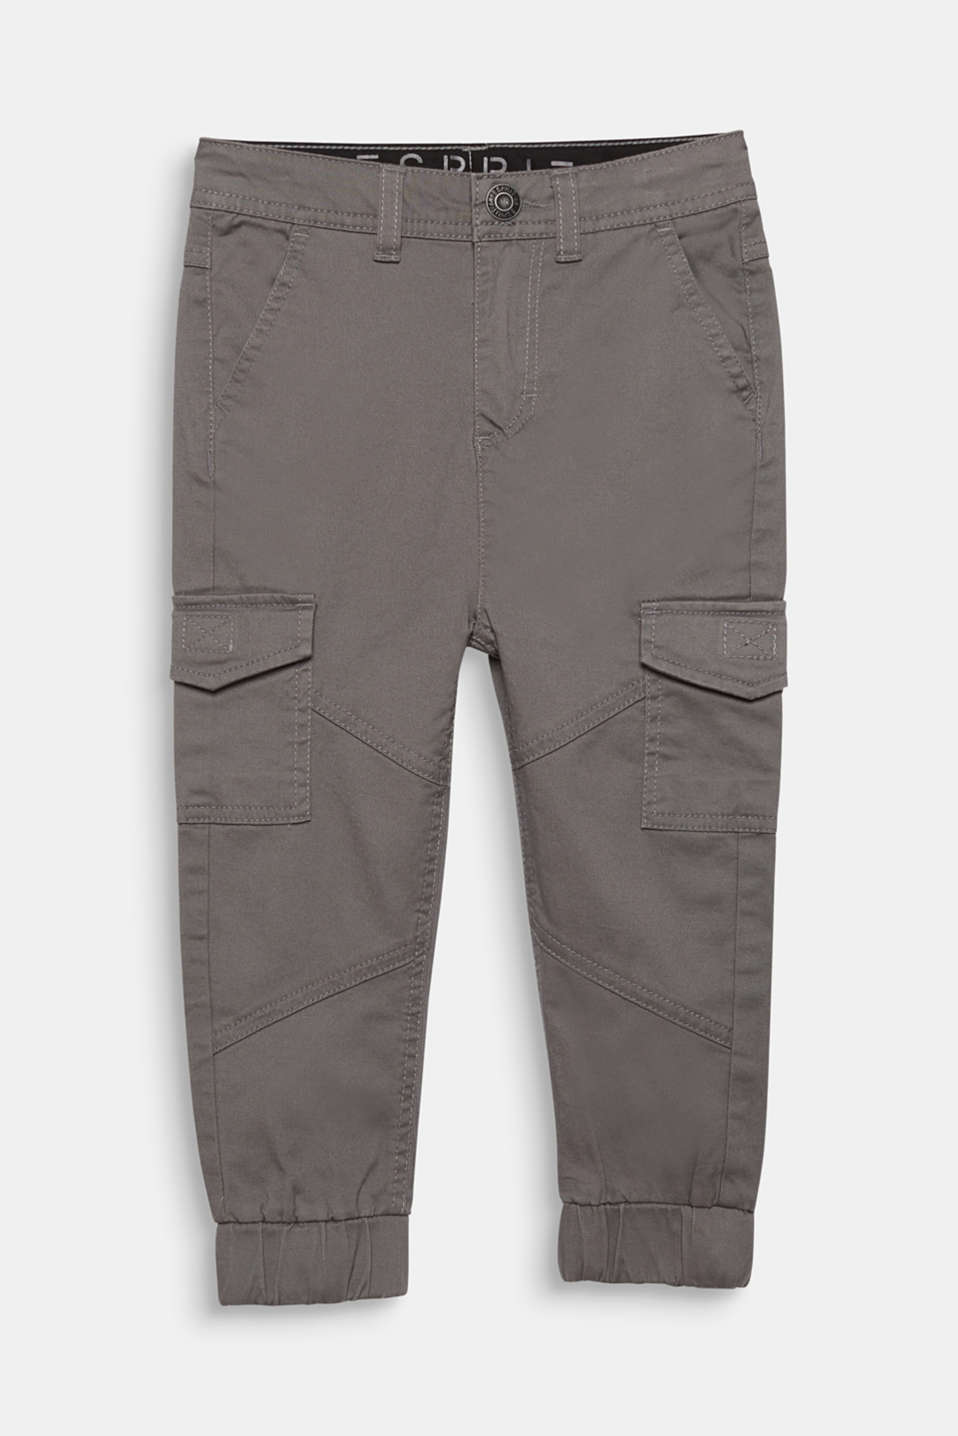 Stretch cotton cargo trousers, adjustable waistband, GREY, detail image number 0